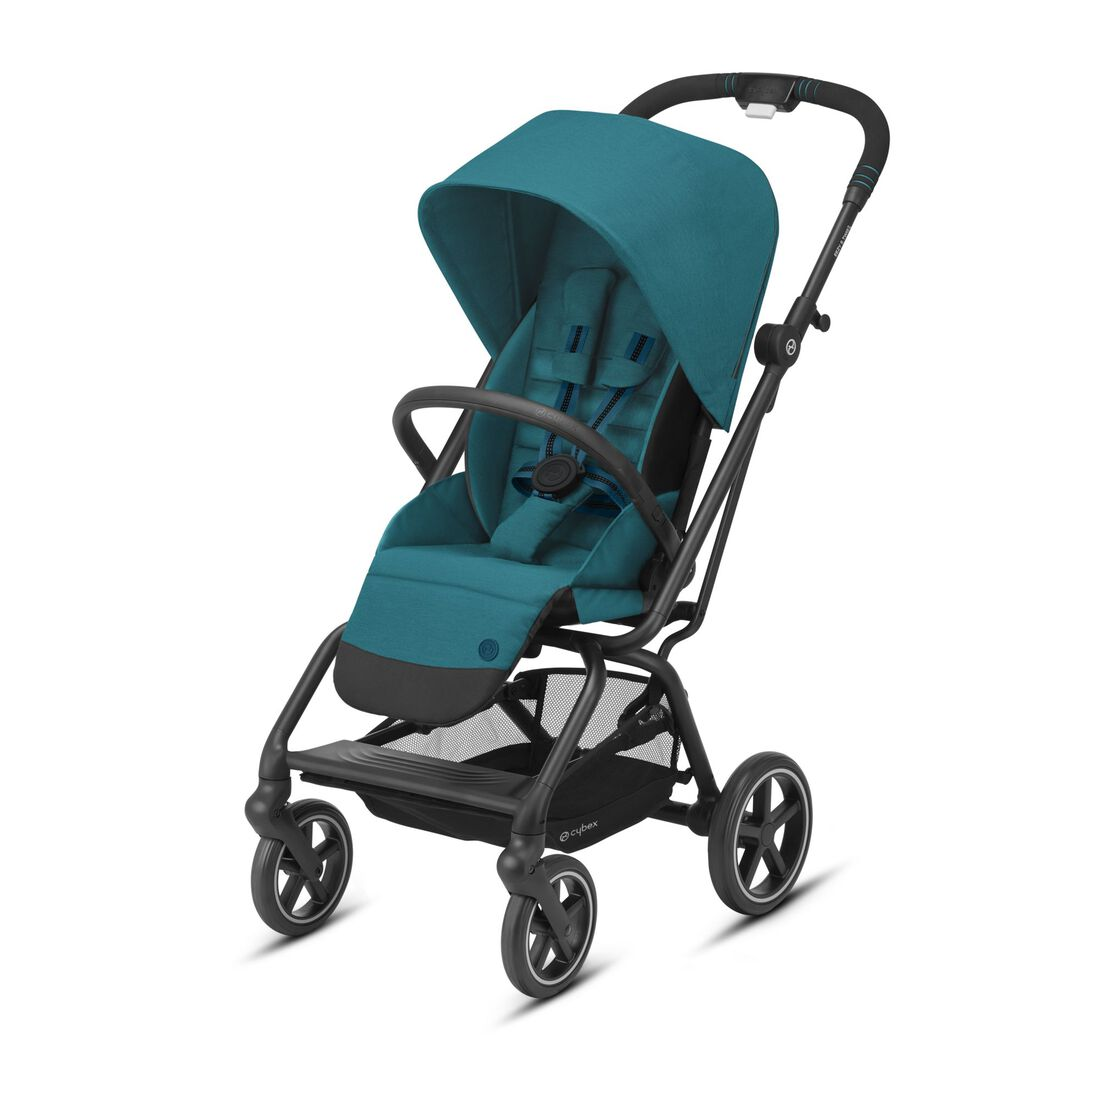 CYBEX Eezy S Twist+2 - River Blue (Schwarzer Rahmen) in River Blue (Black Frame) large Bild 1